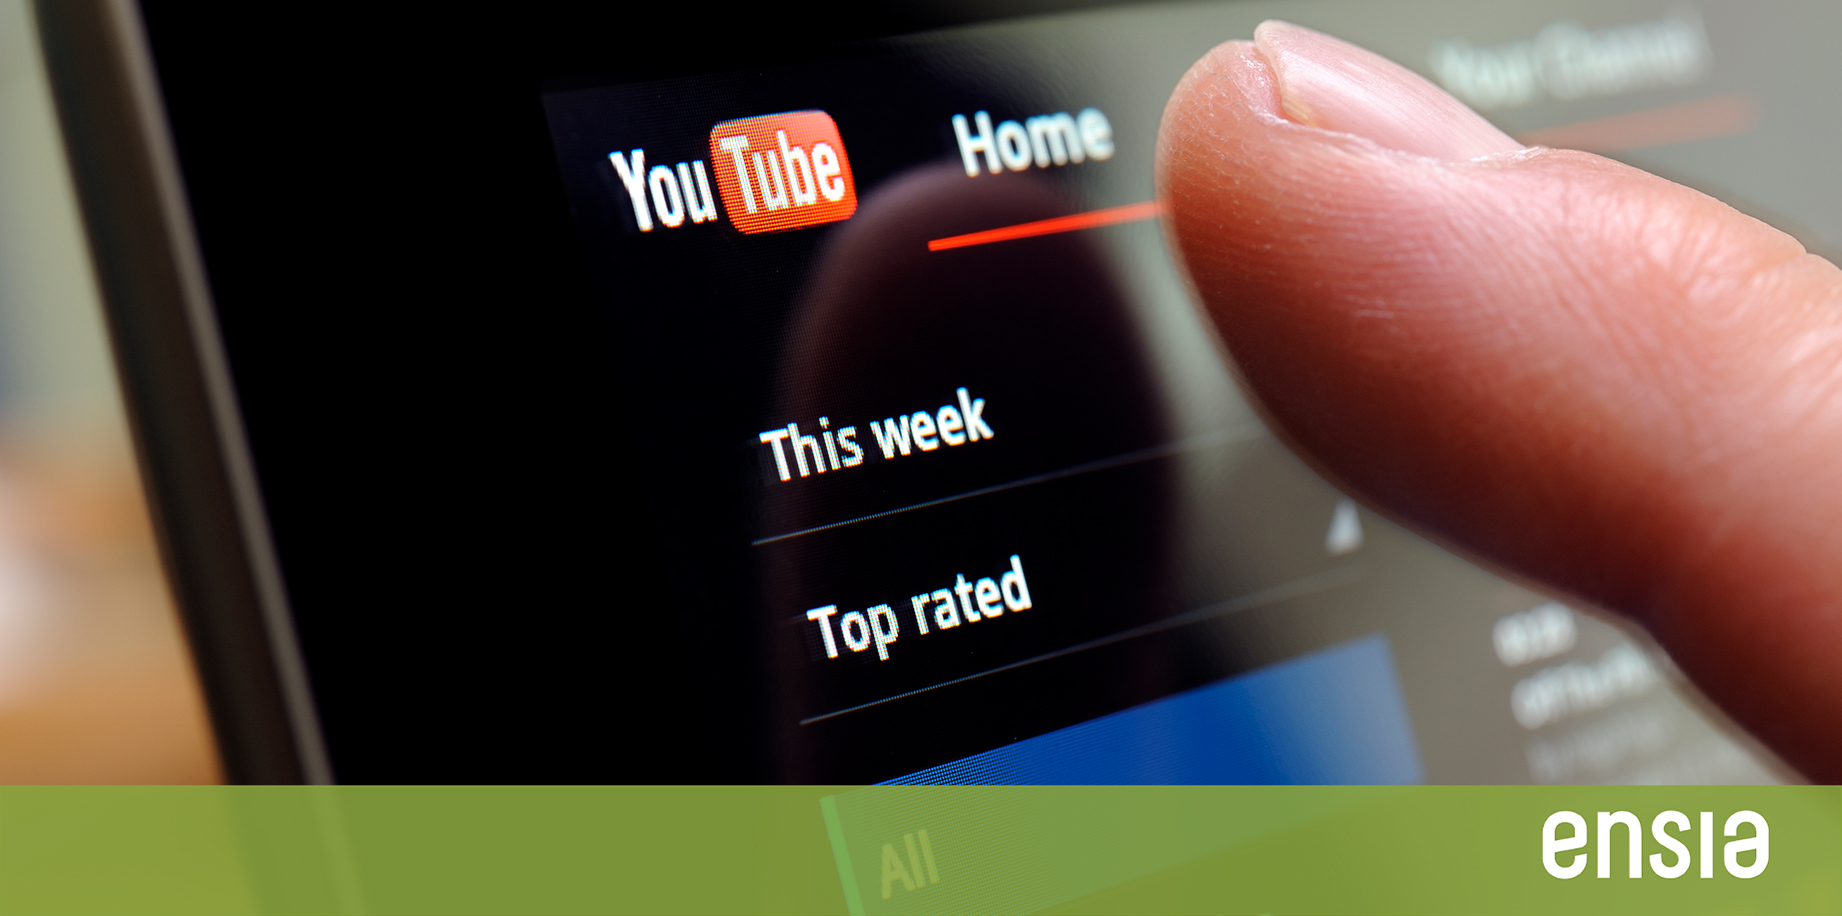 Climate science faces challenges on YouTube. Here's what we can do about it. | Ensia